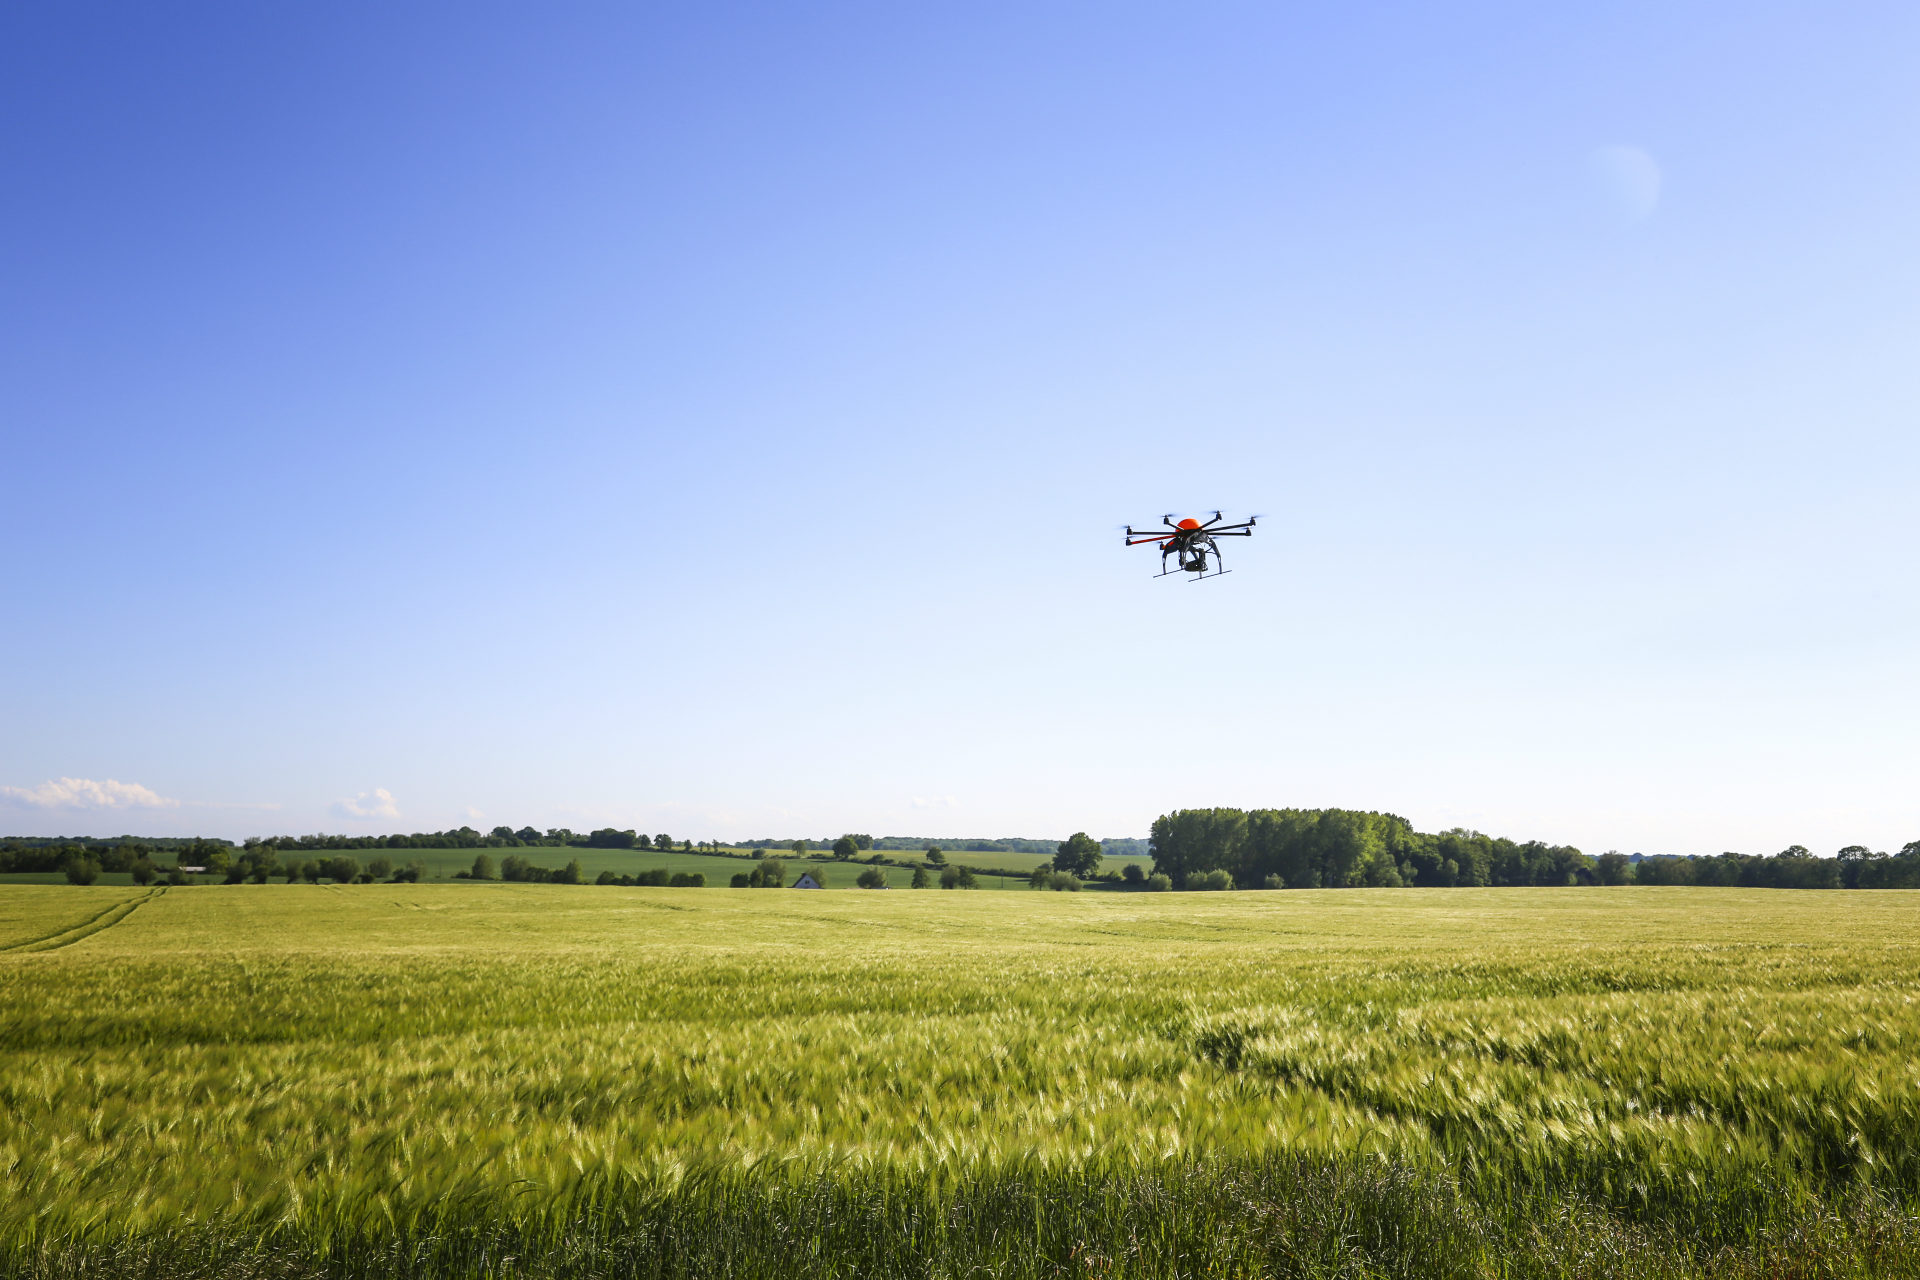 drone flying through a grassy field